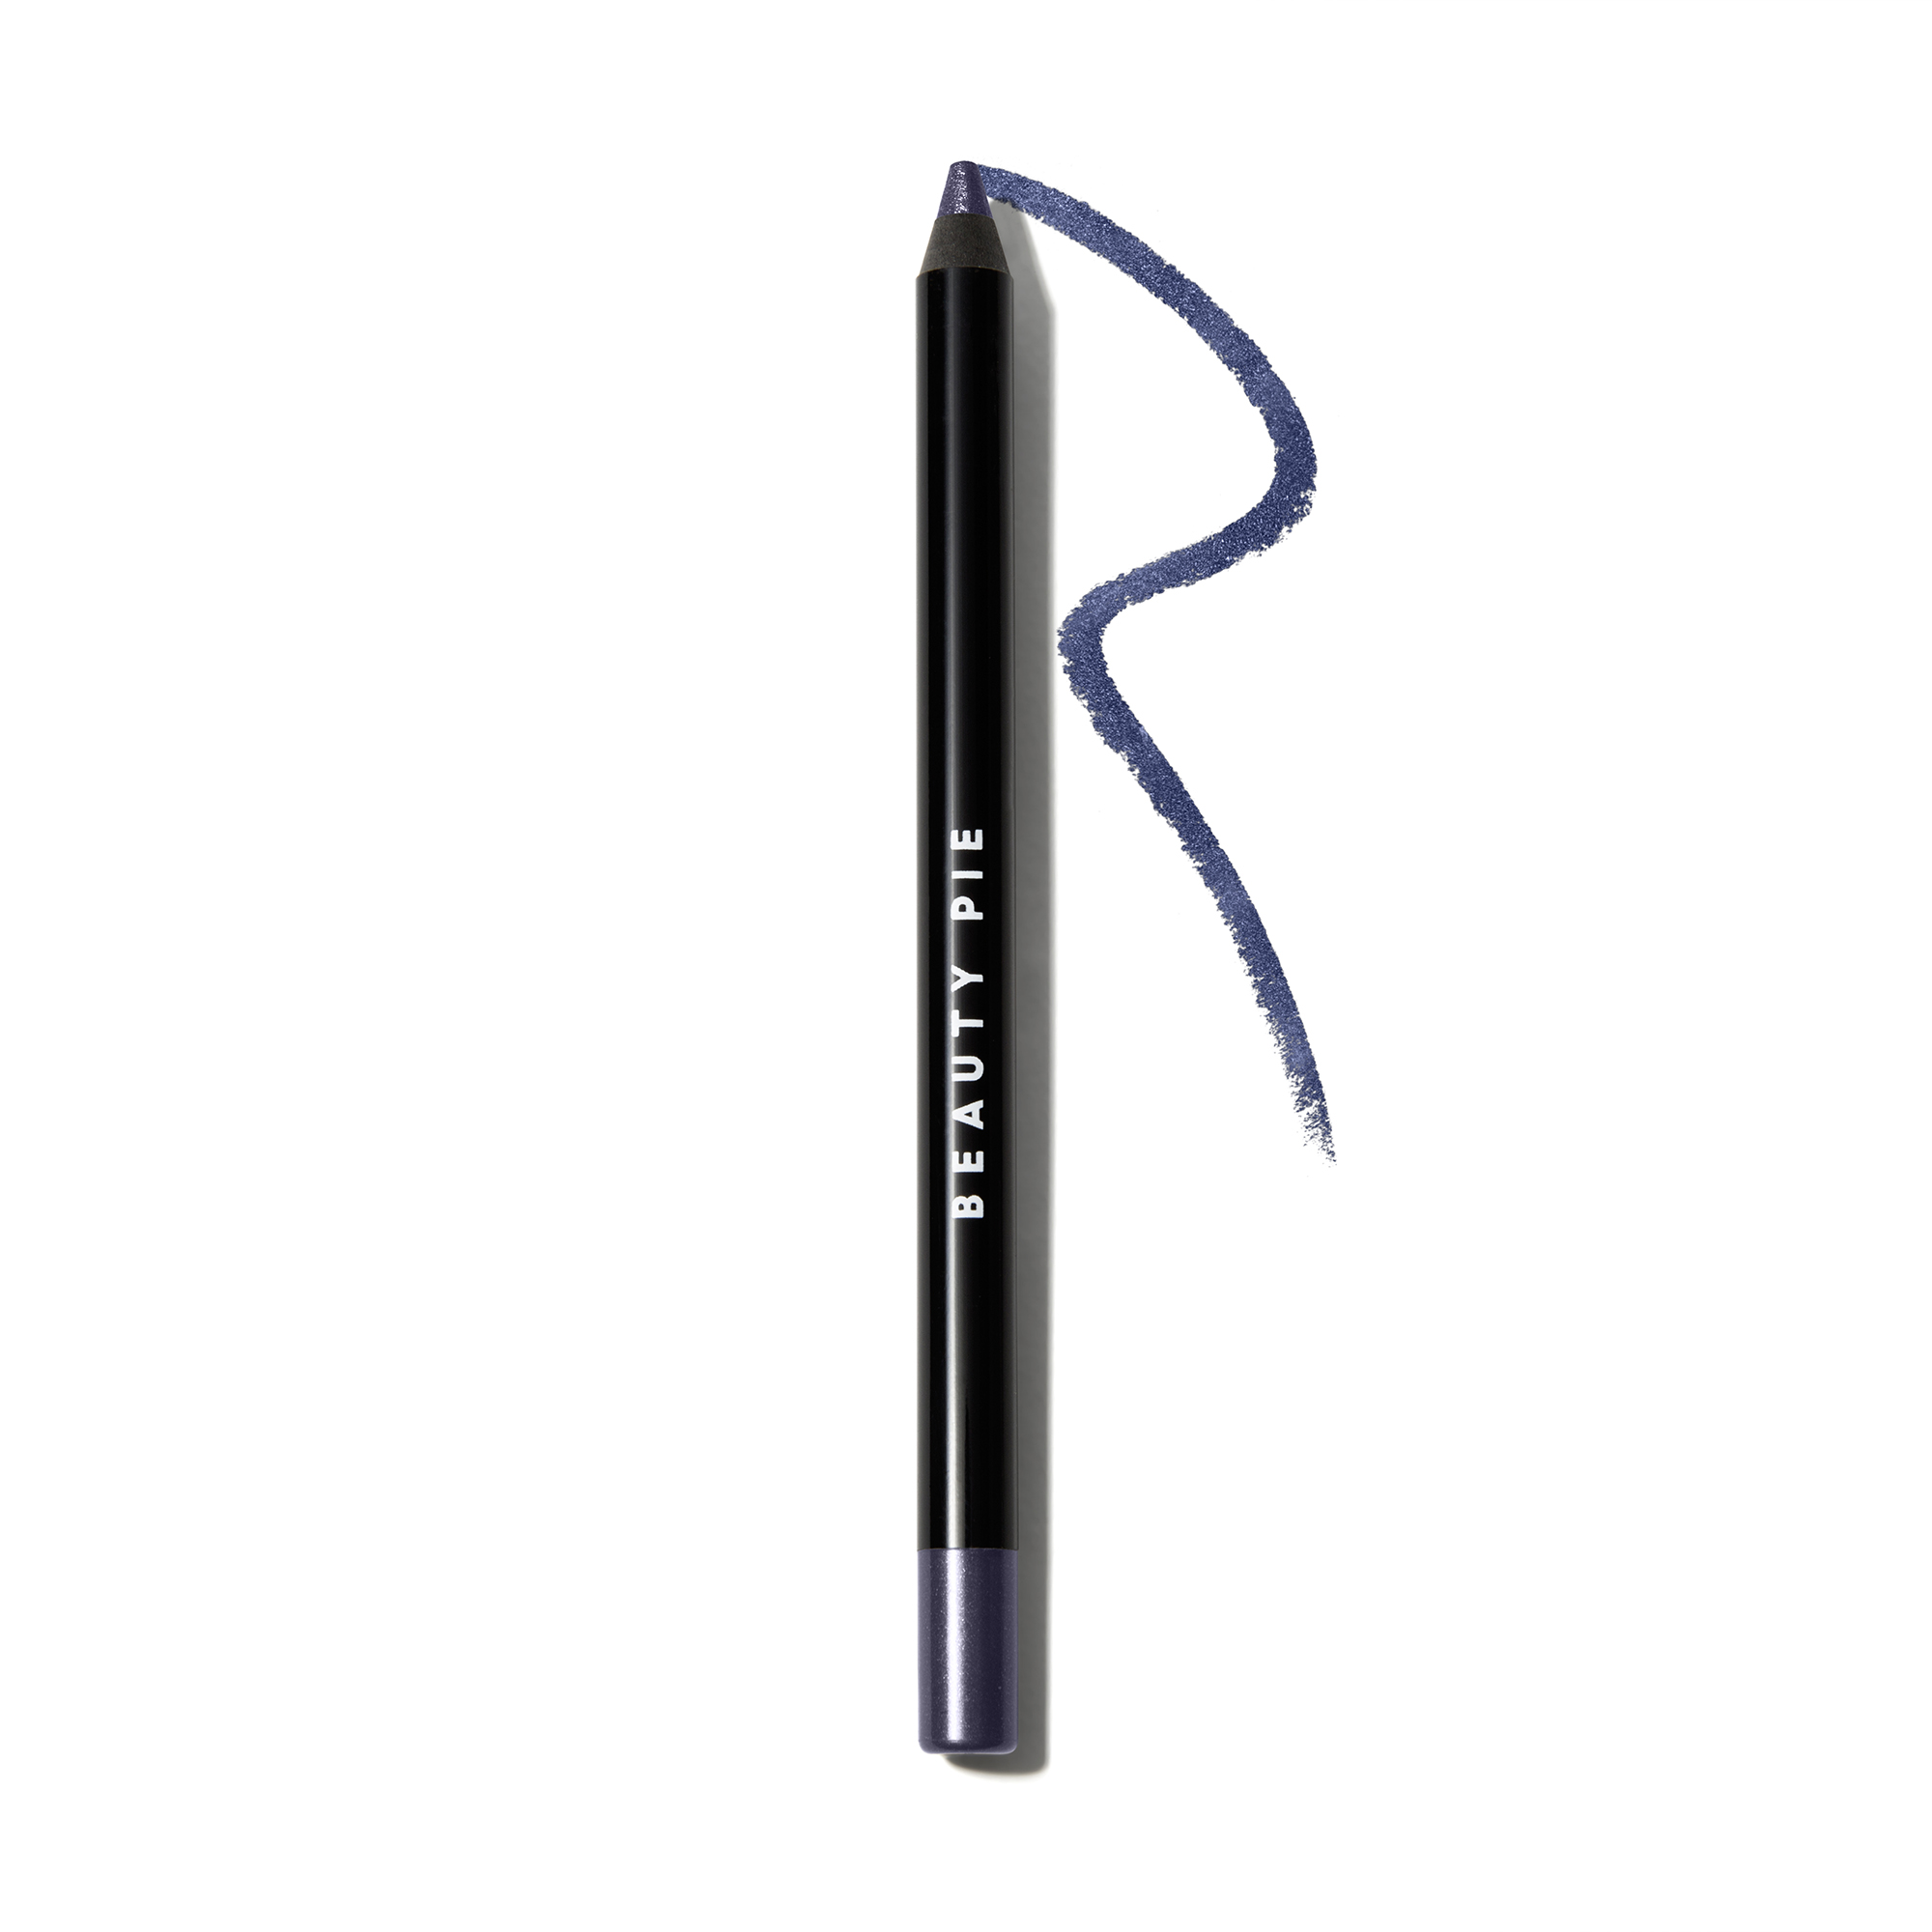 Ultra Colour Pro Gel Eyeliner in Deep Blue Sea by Beauty Pie